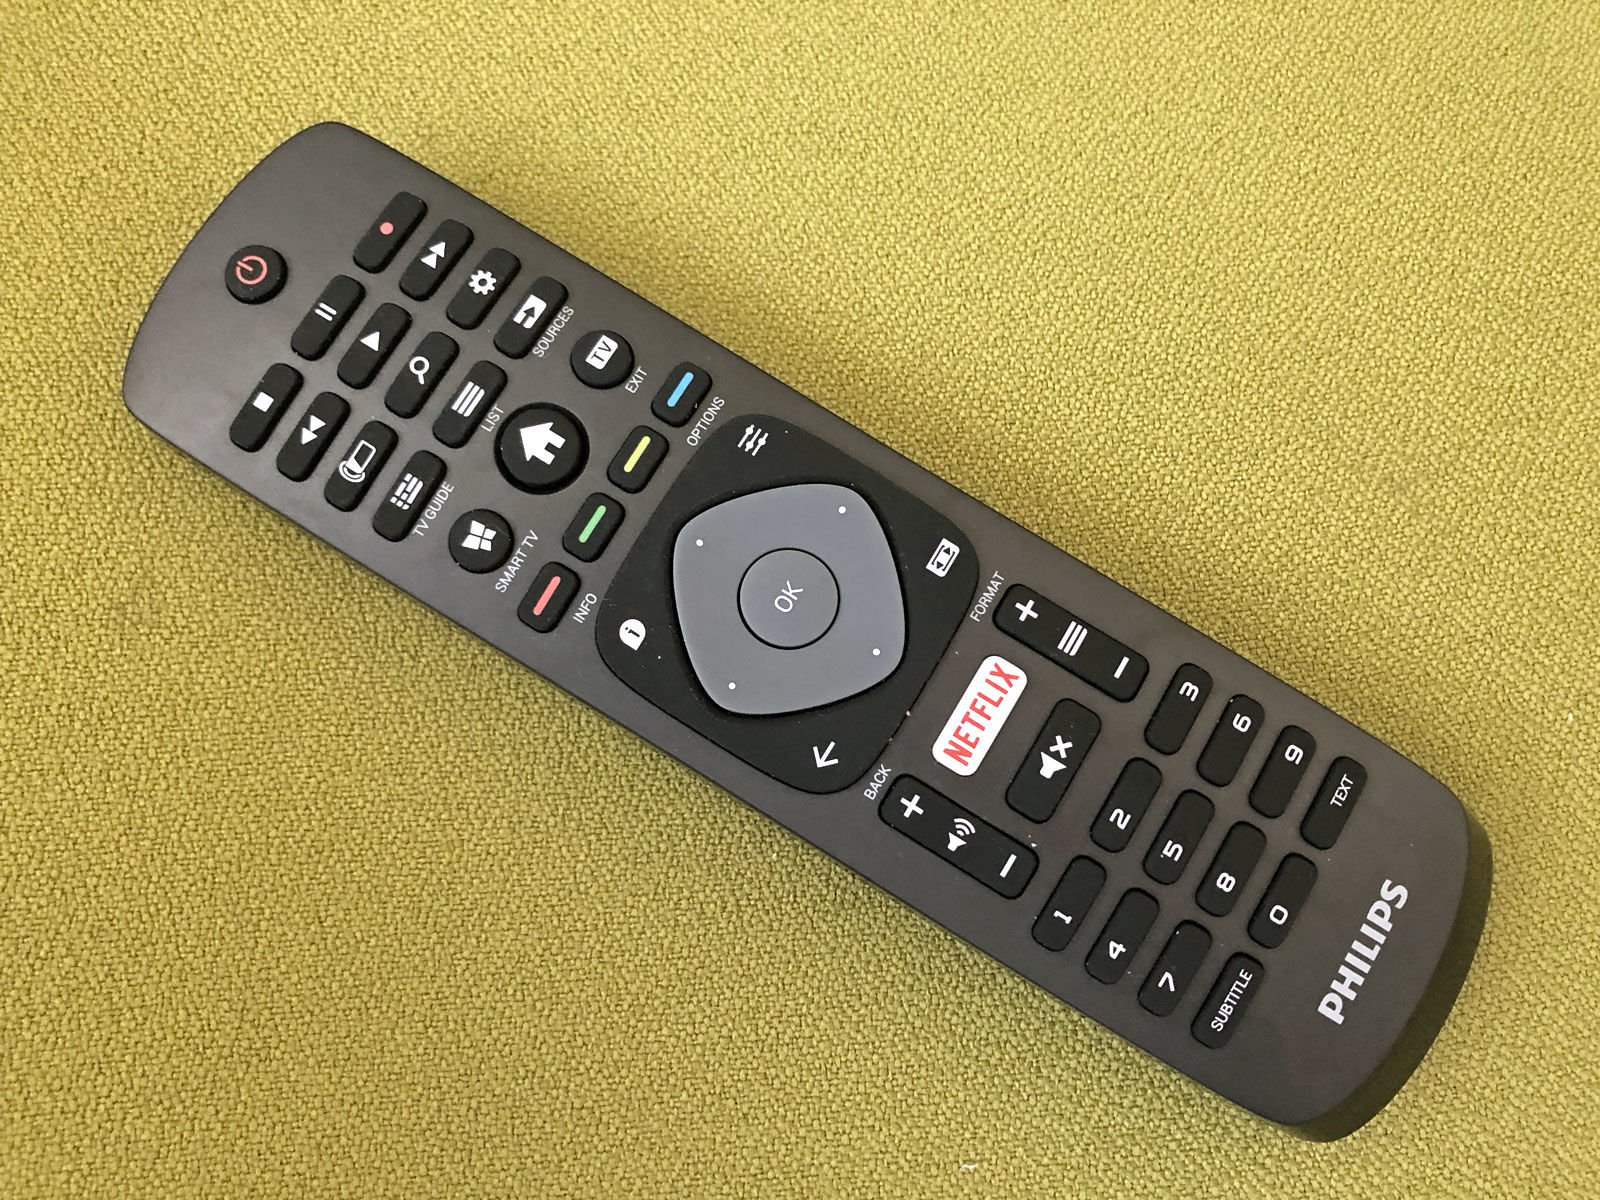 Philips 6703 review